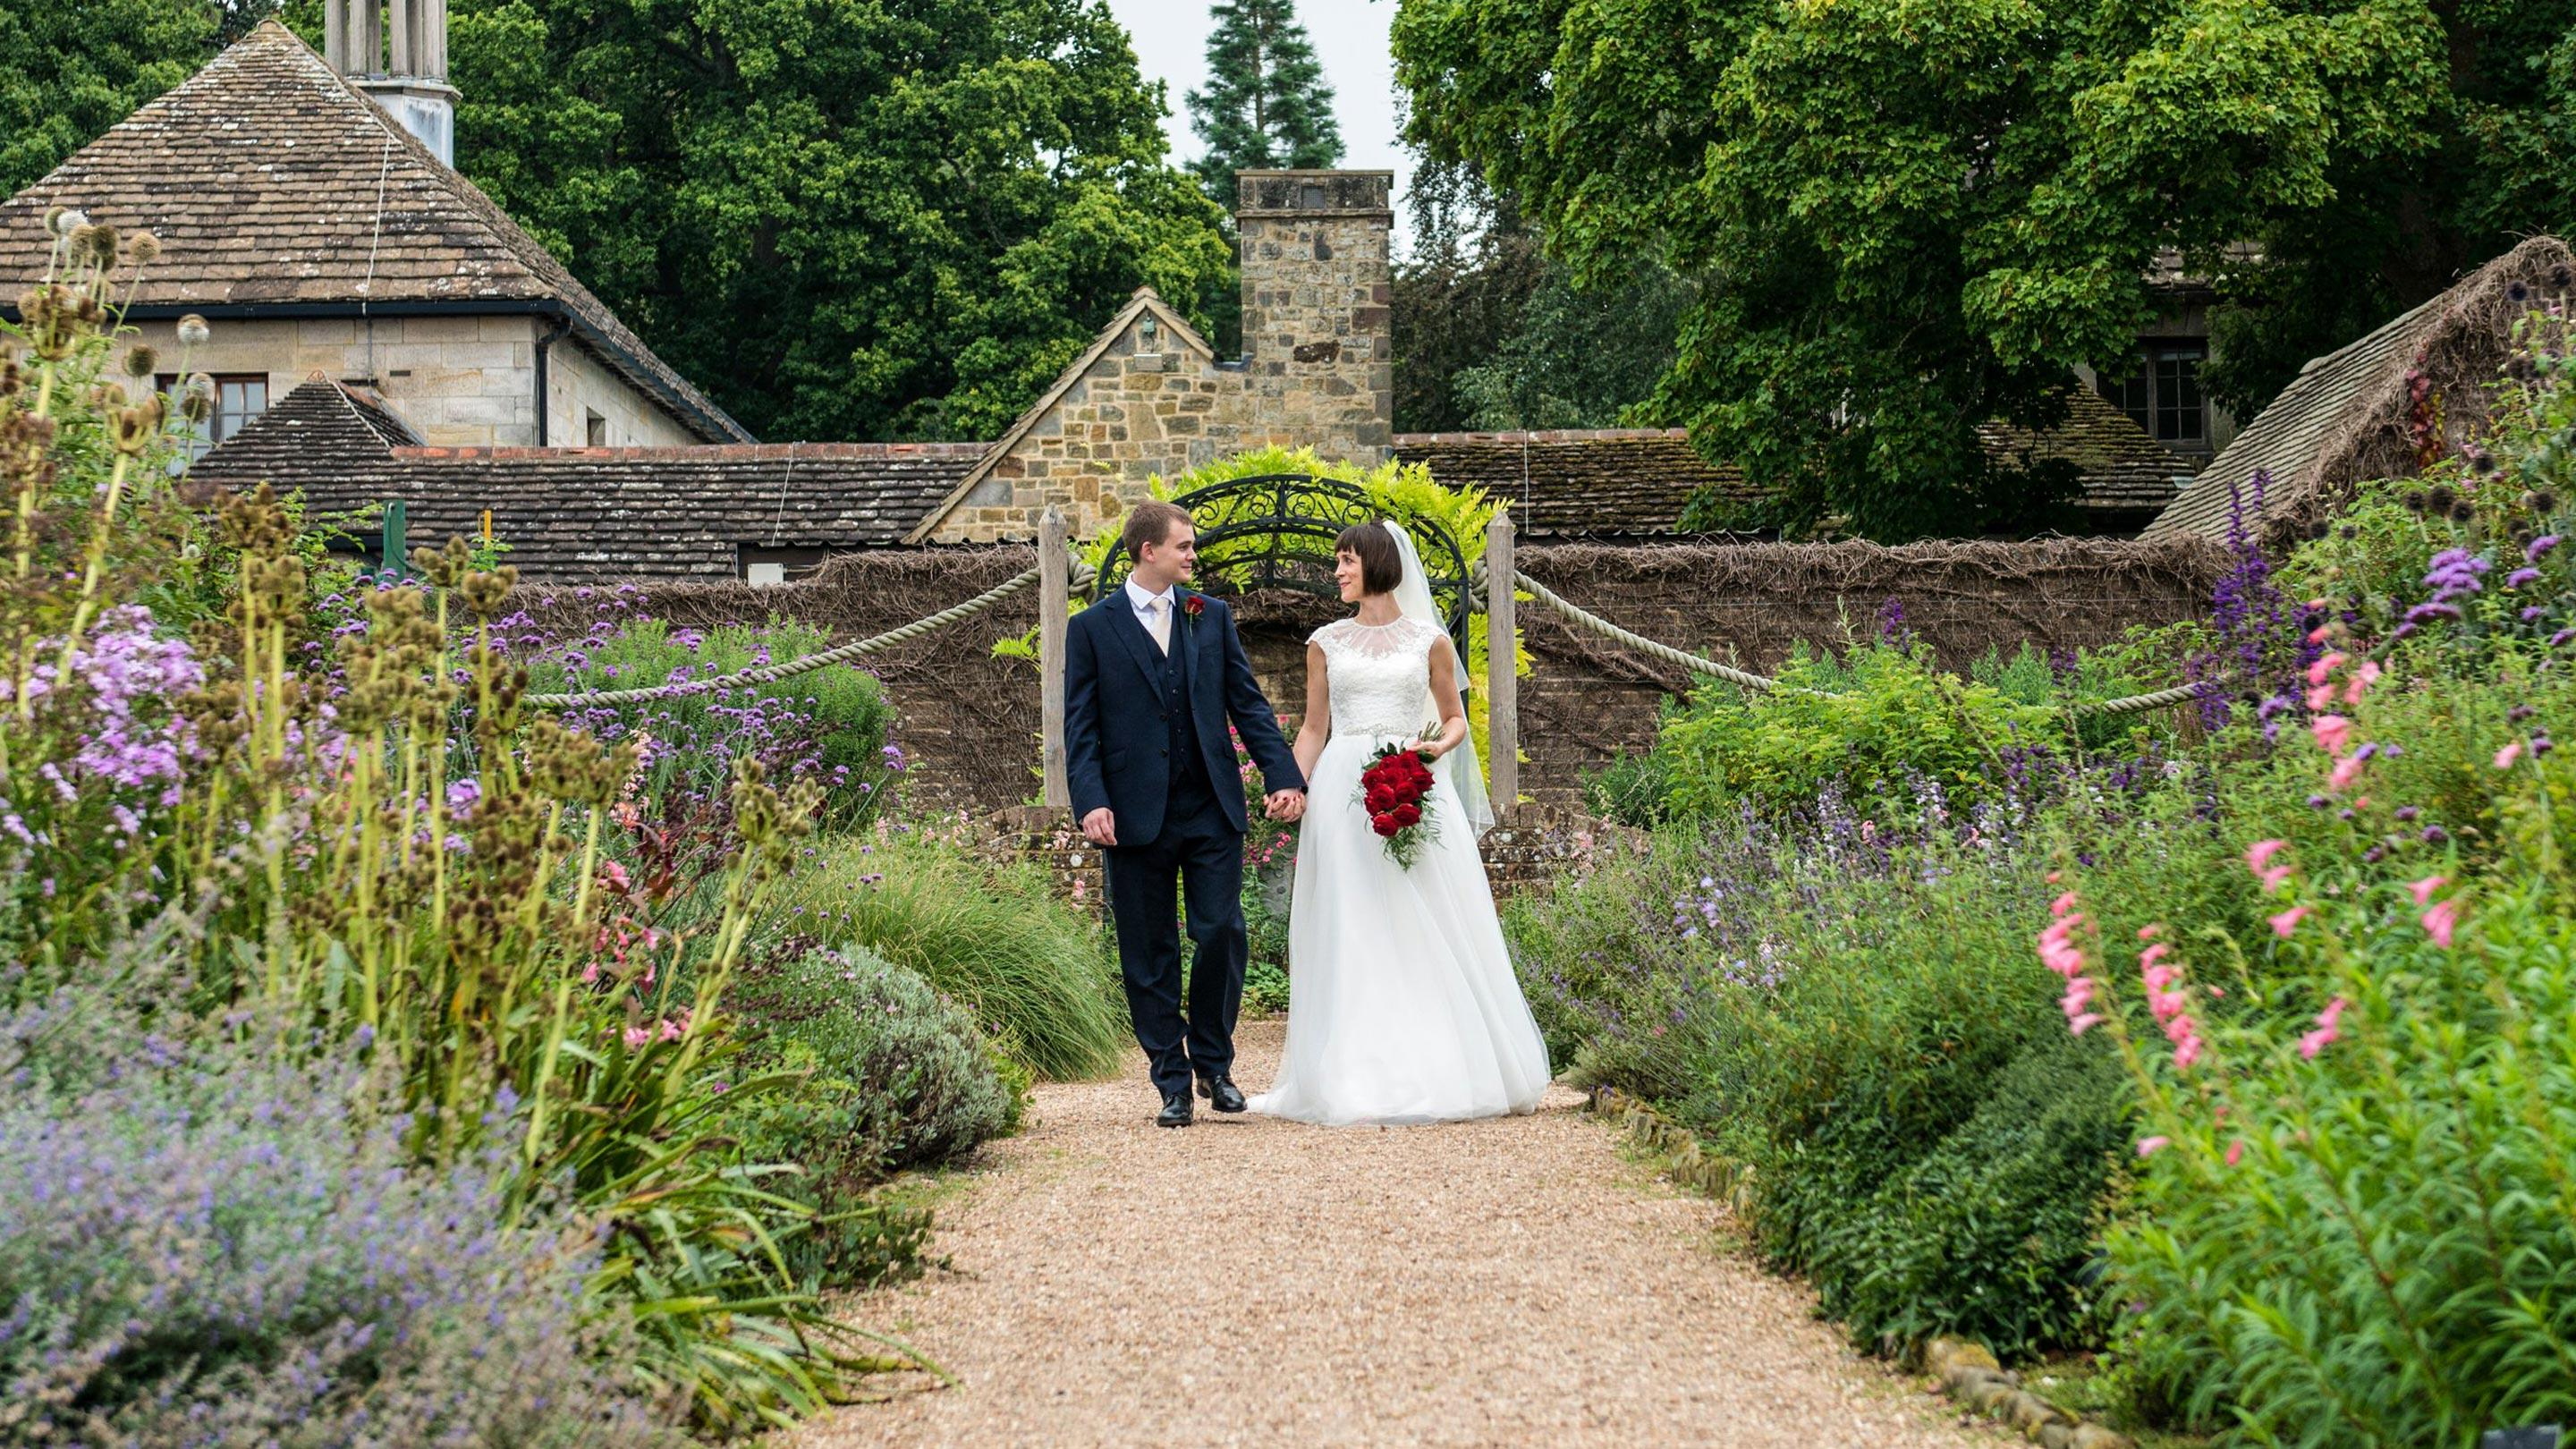 Wedding couple in the walled garden at Wakehurst